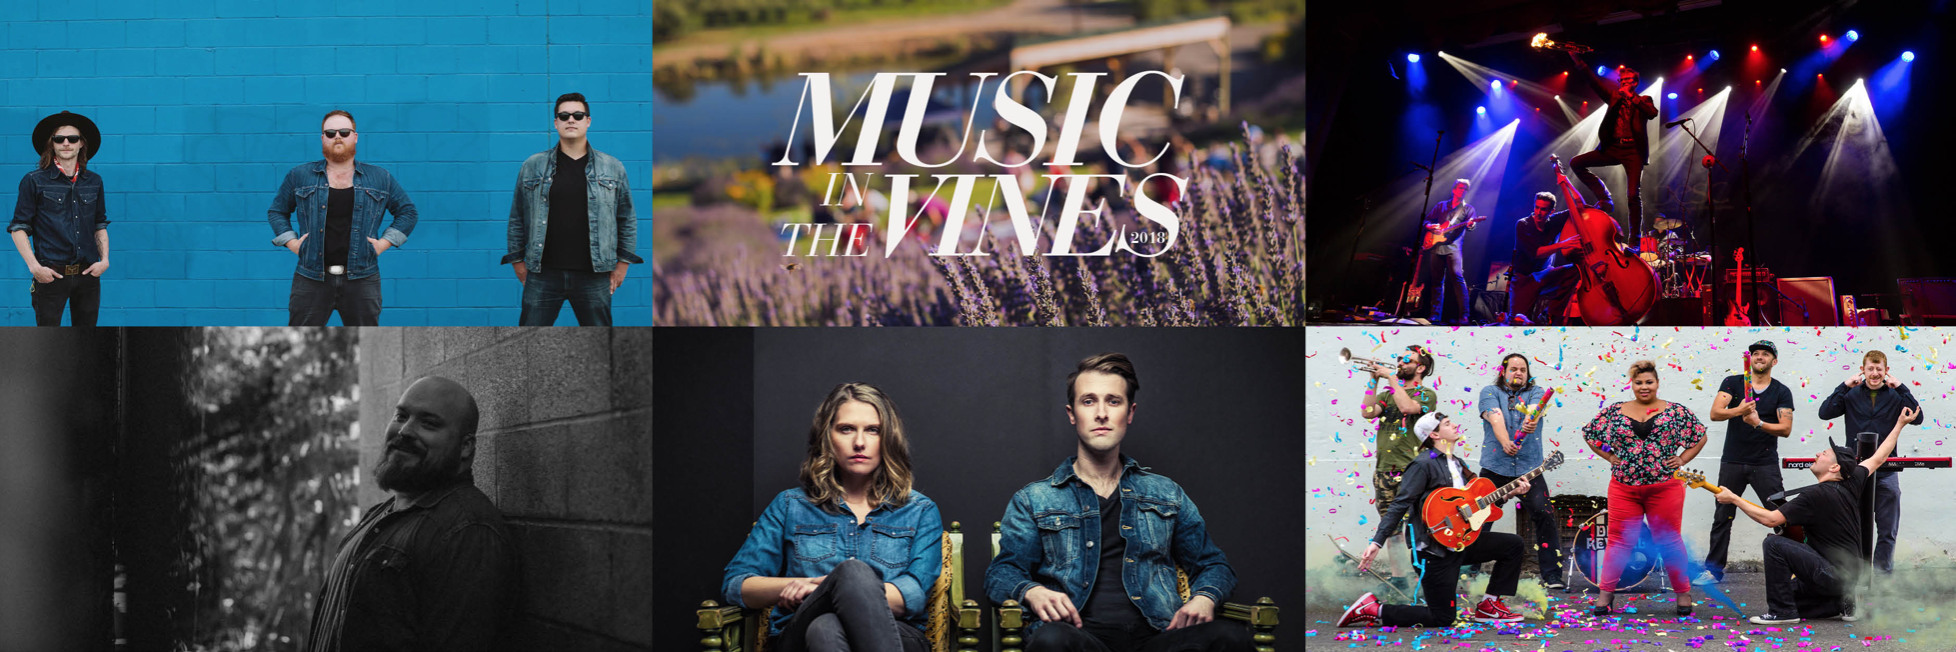 Gilbert Cellars Winery at Hackett Ranch  sc 1 st  The Stranger & 2018 Music In The Vines at Gilbert Cellars Winery at Hackett Ranch ...